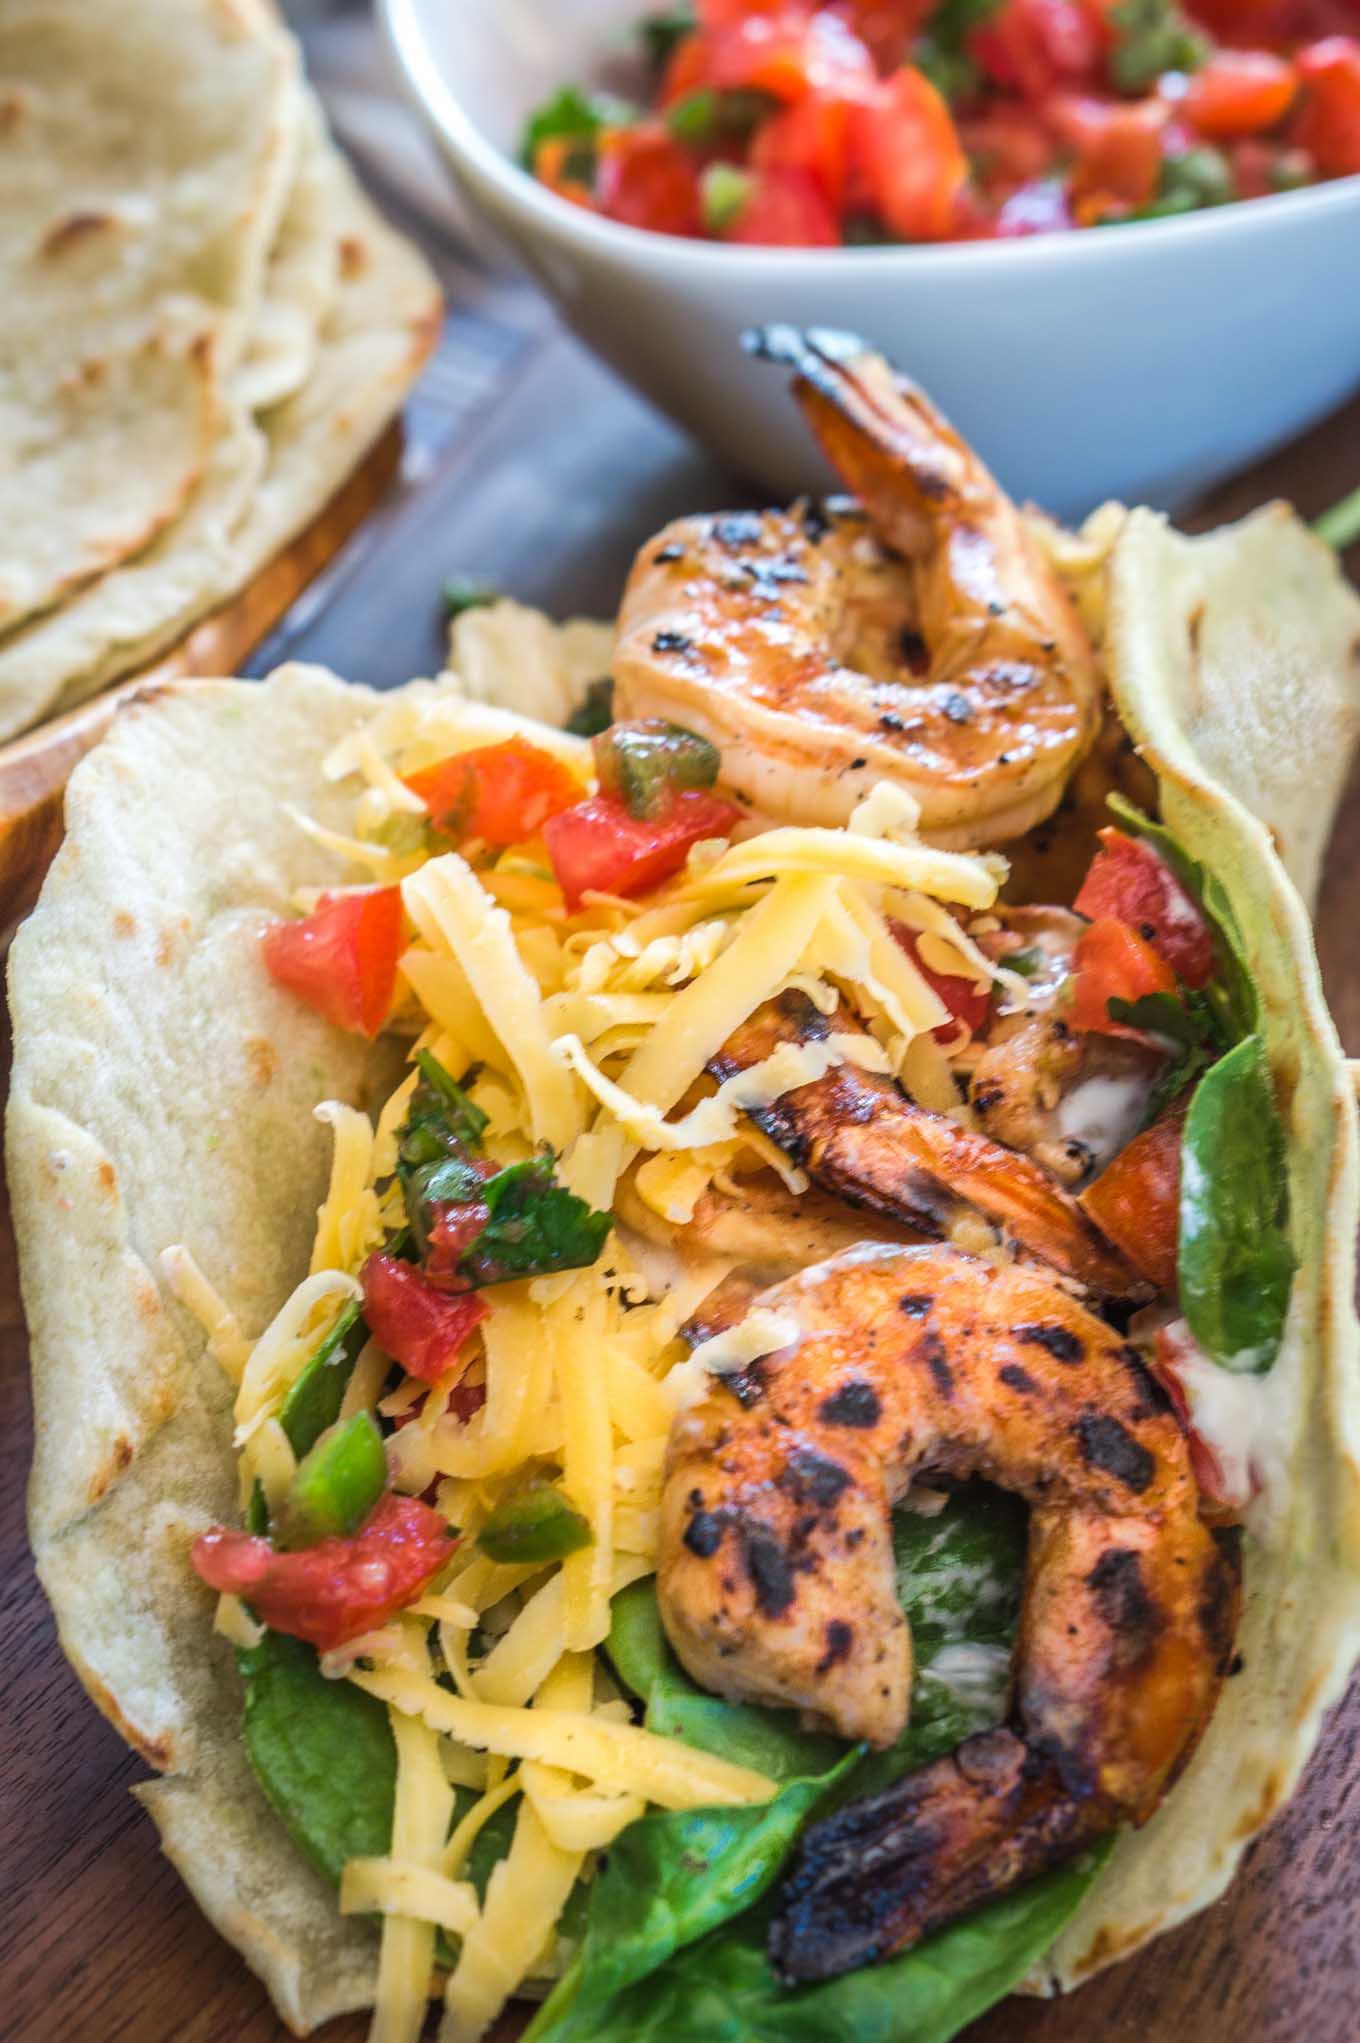 Sideview of a taco shell filled with lettuce, diced tomatoes, and cheese, topped with Raspberry jalapeno Shrimp. A bowl of fresh pico and a jalapeno sit in the background.